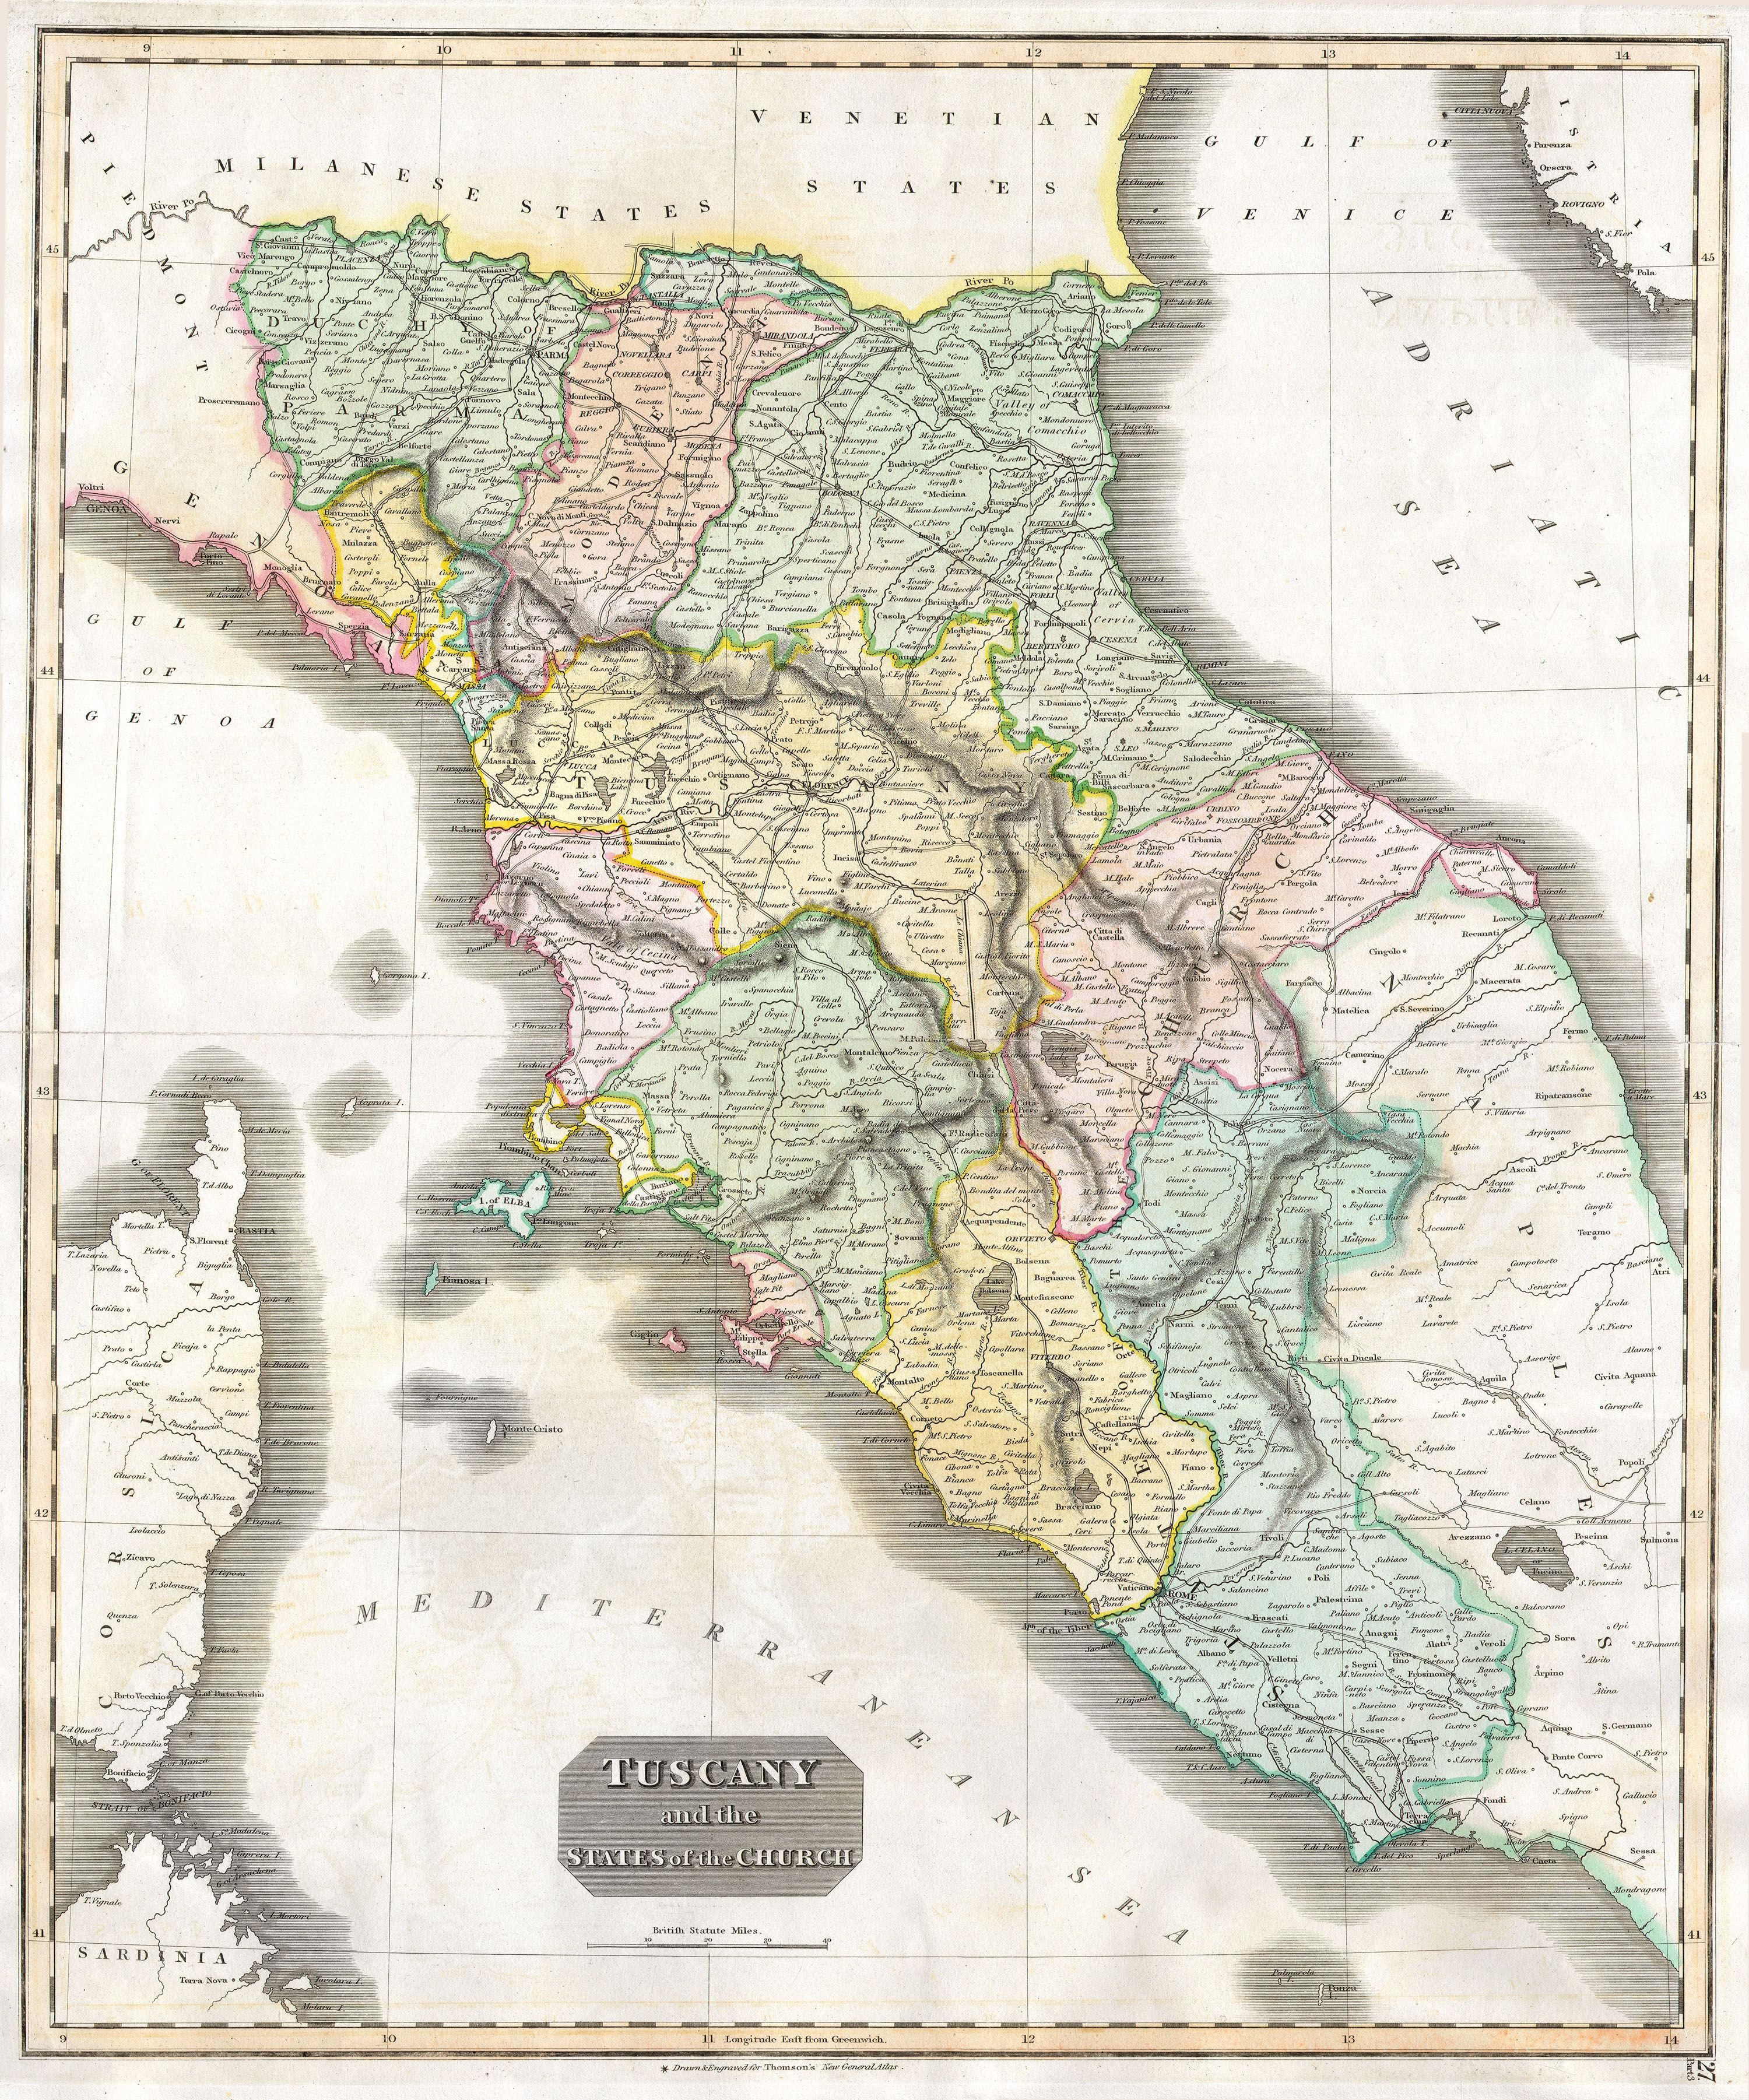 File Thomson Map Of Tuscany Florence Italy Geographicus - Map tuscany